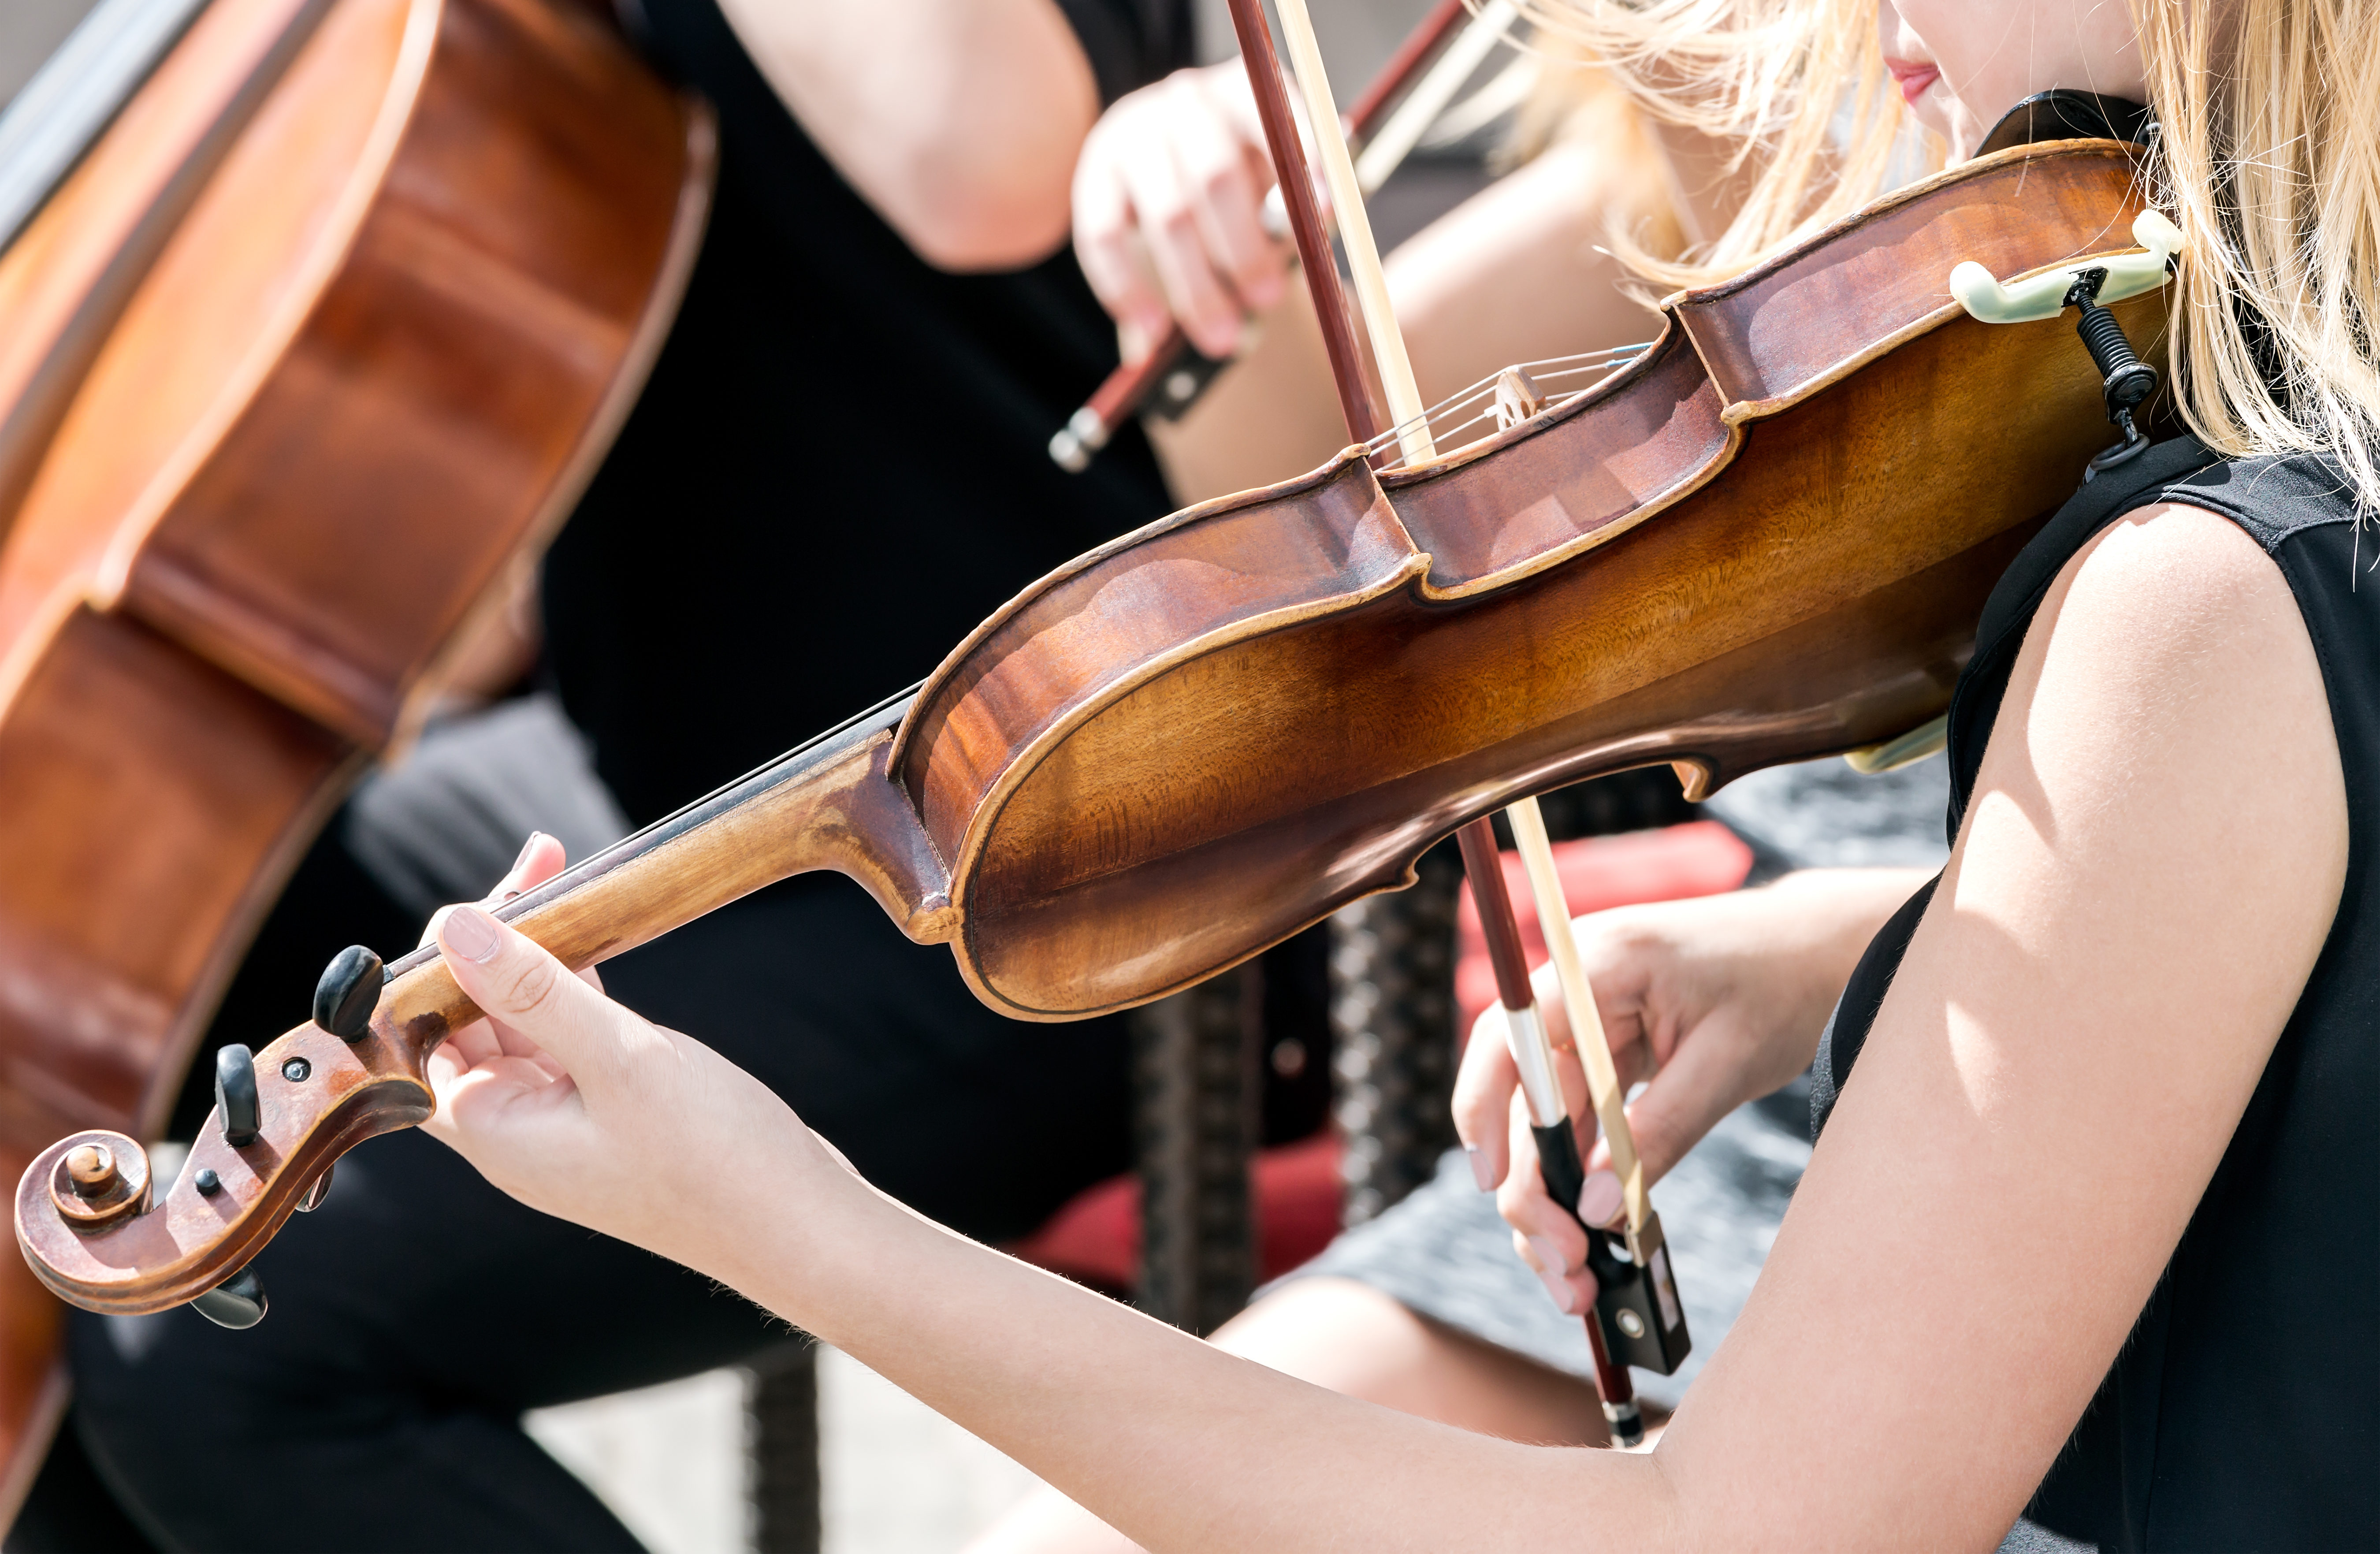 hands of the young woman violinist play music at concert